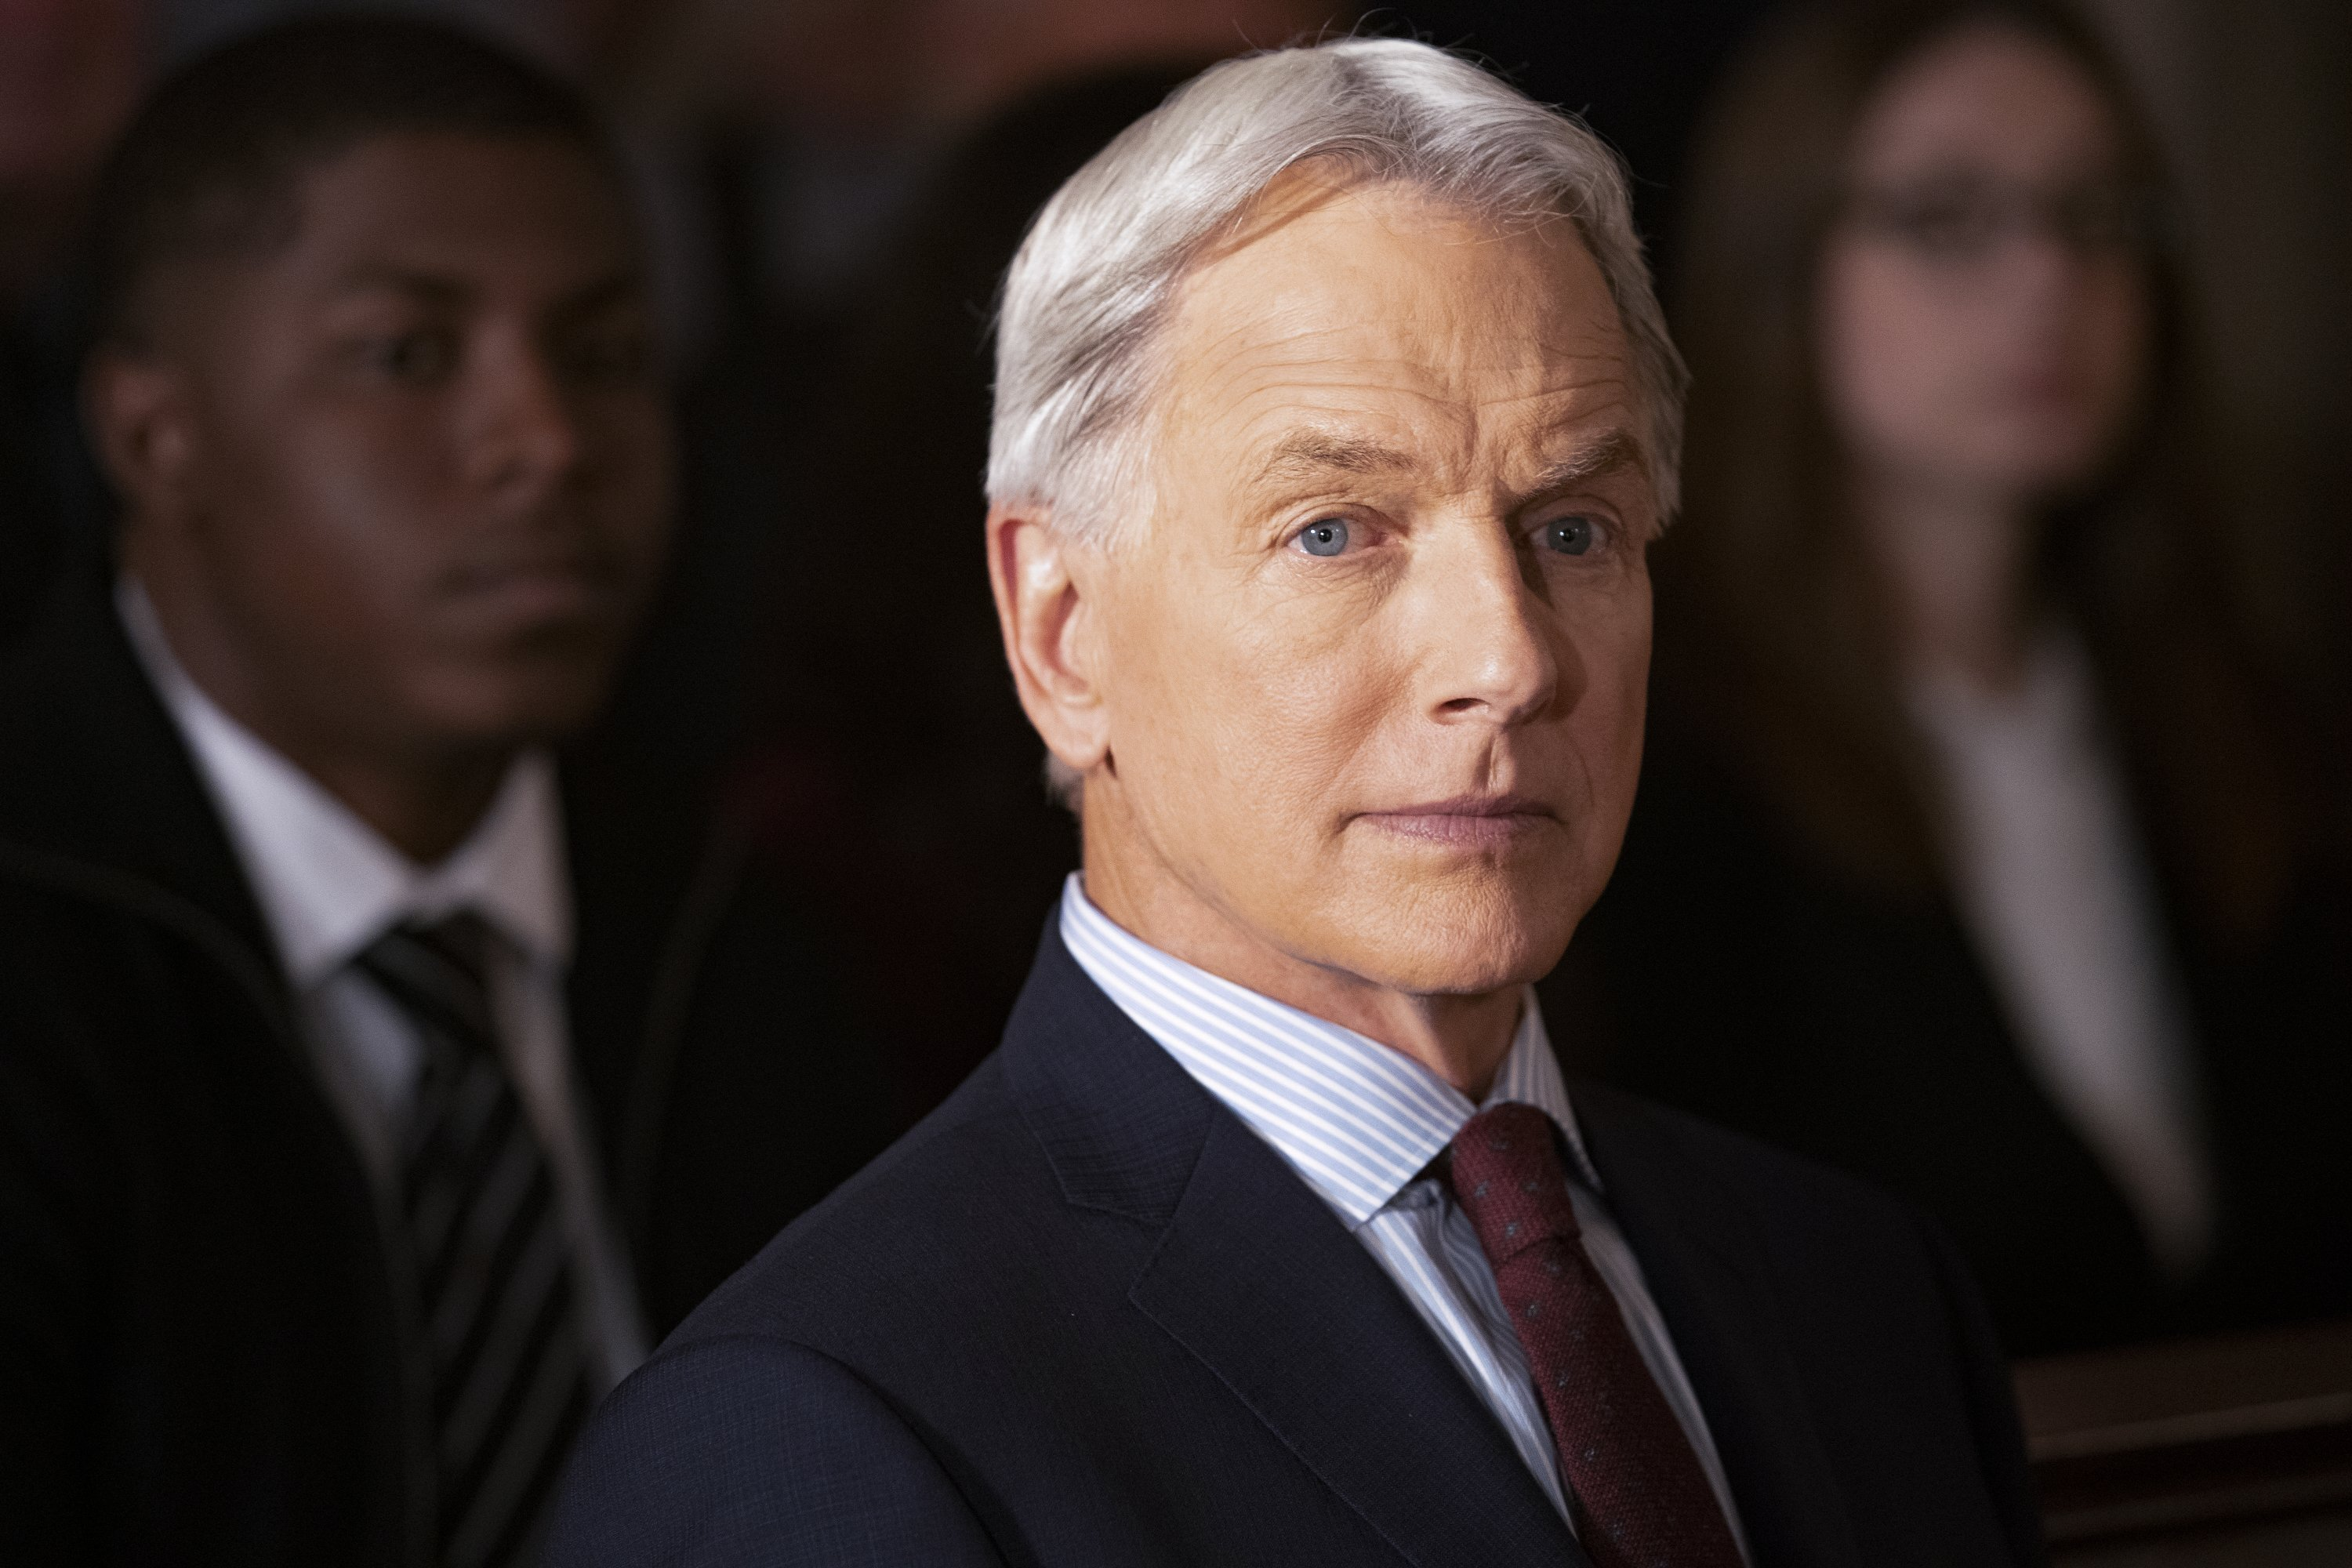 A snapshot of Mark Harmon from March 21, 2019 as NCIS Special Agent Leroy Jethro Gibbs. | Source: Getty Images